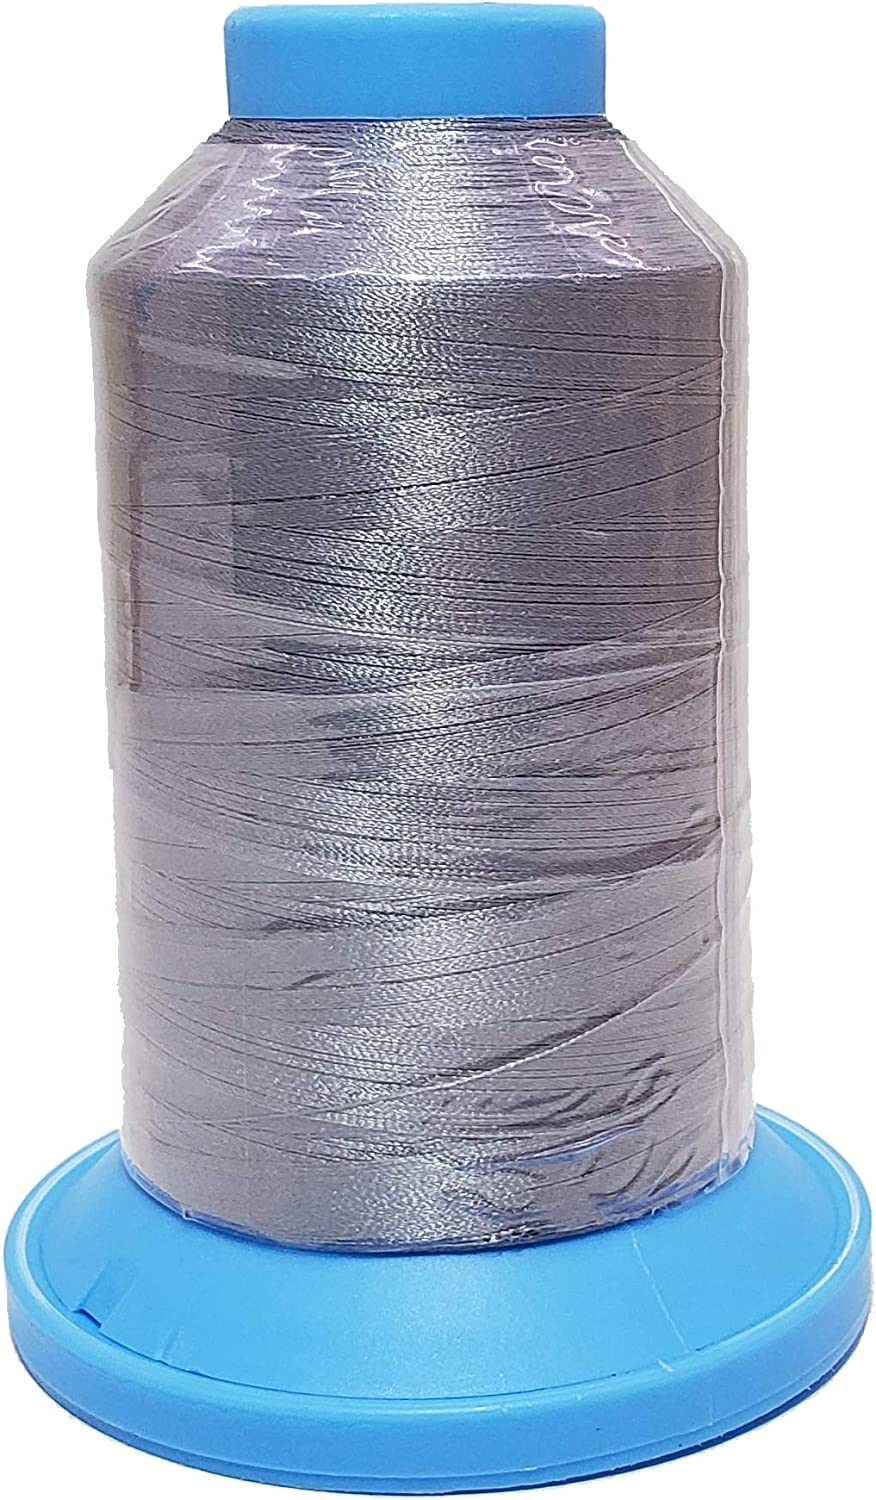 Robison-Anton 2 Ply Super Bright Polyester Embroidery Thread 40Wt//120D//5550 yd Purple